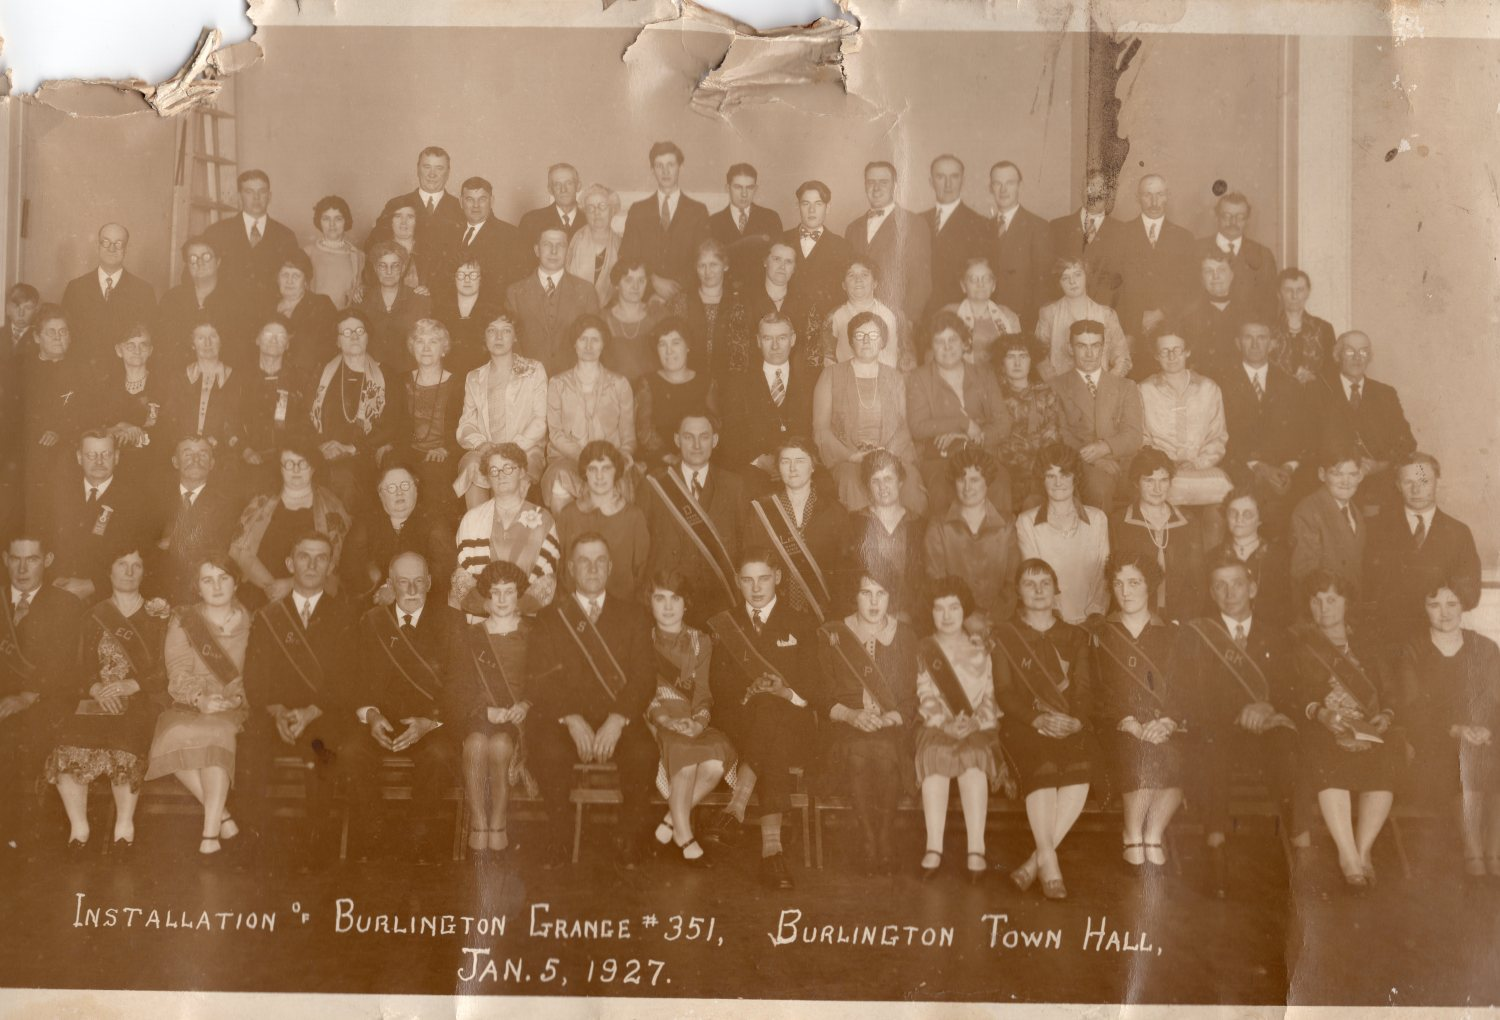 1927 Grange Burlington MA right side. 1927 Grange Burlington MA, left side. Photo credit: Dorothy Bennett